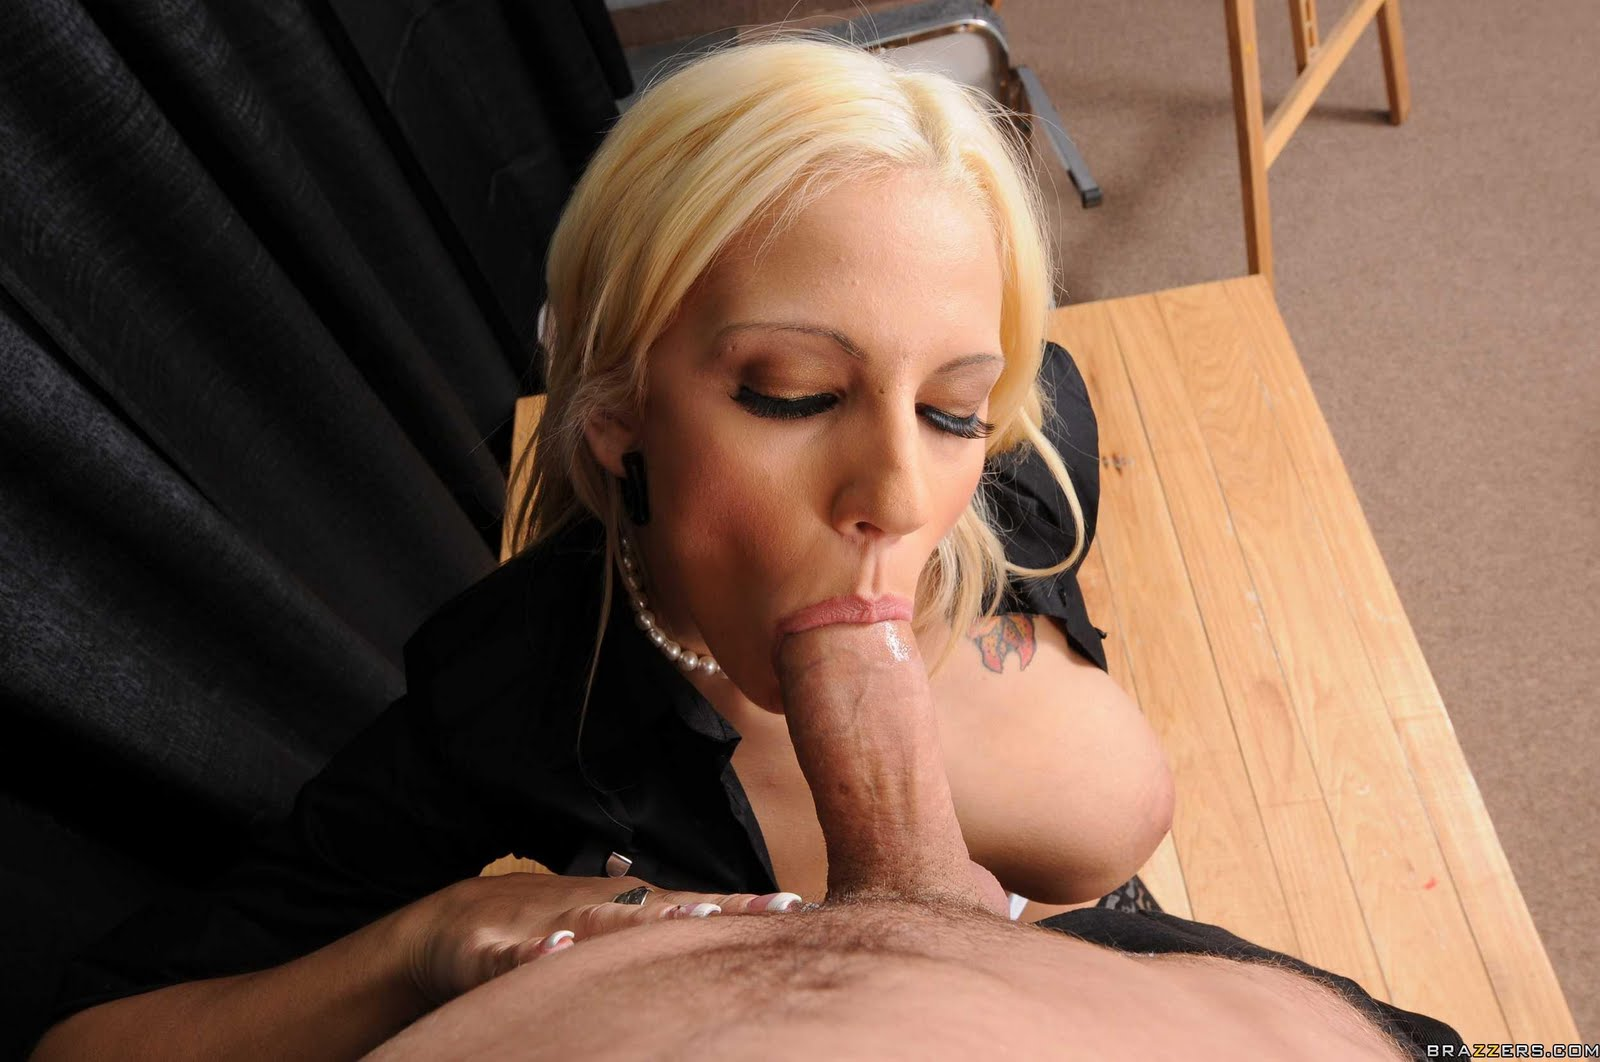 Hot milf photo galleries Quality Porno free site archive